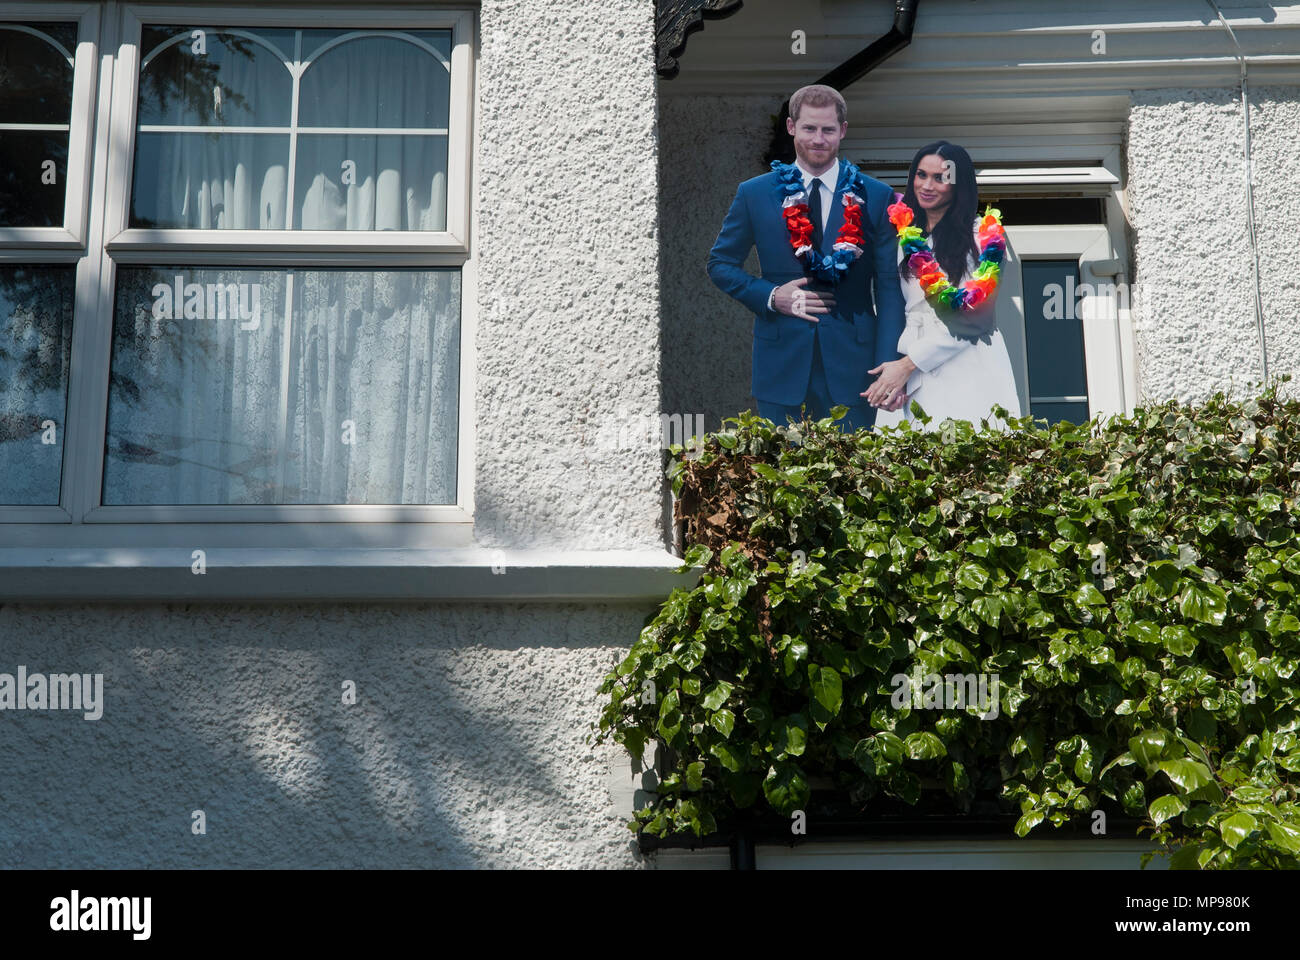 Royal Wedding Prince Harry Meghan Markle, Duke Duchess of Sussex cut out cardboard figures of couple private home balcony Windsor. 19th may 2018 HOMER SYKES Stock Photo